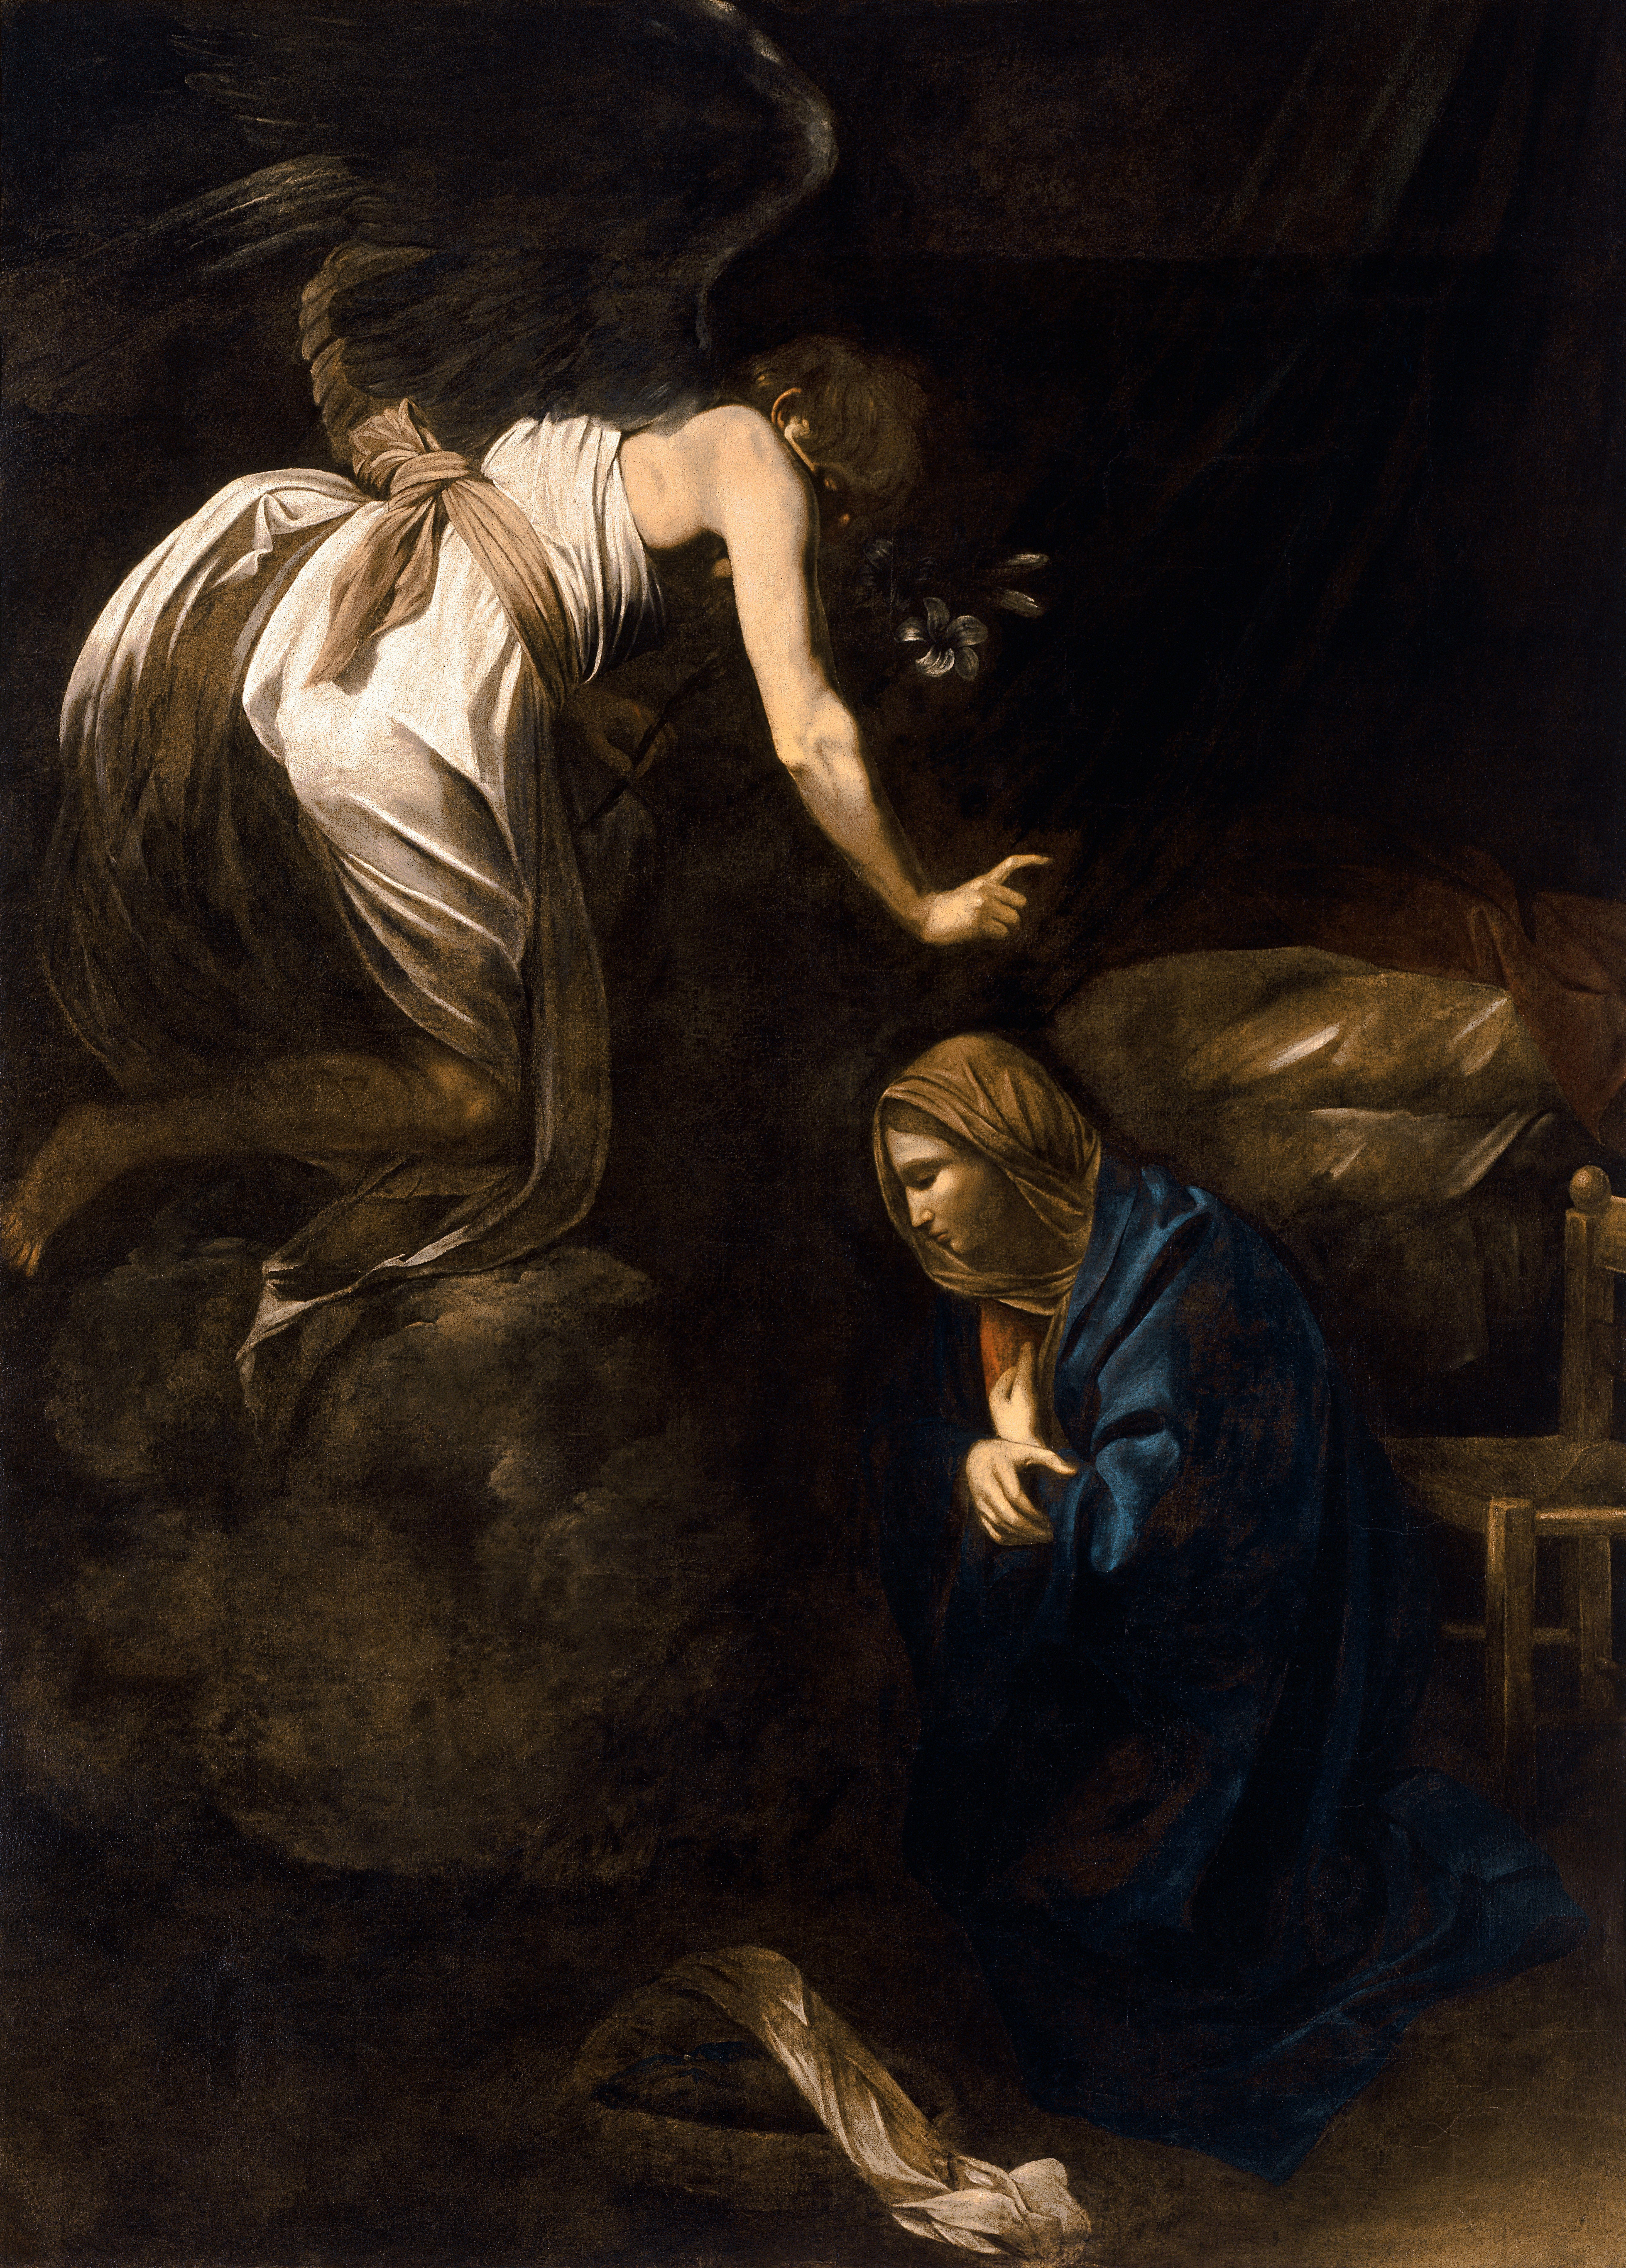 https://upload.wikimedia.org/wikipedia/commons/e/e9/Annunciation-Caravaggio.jpg